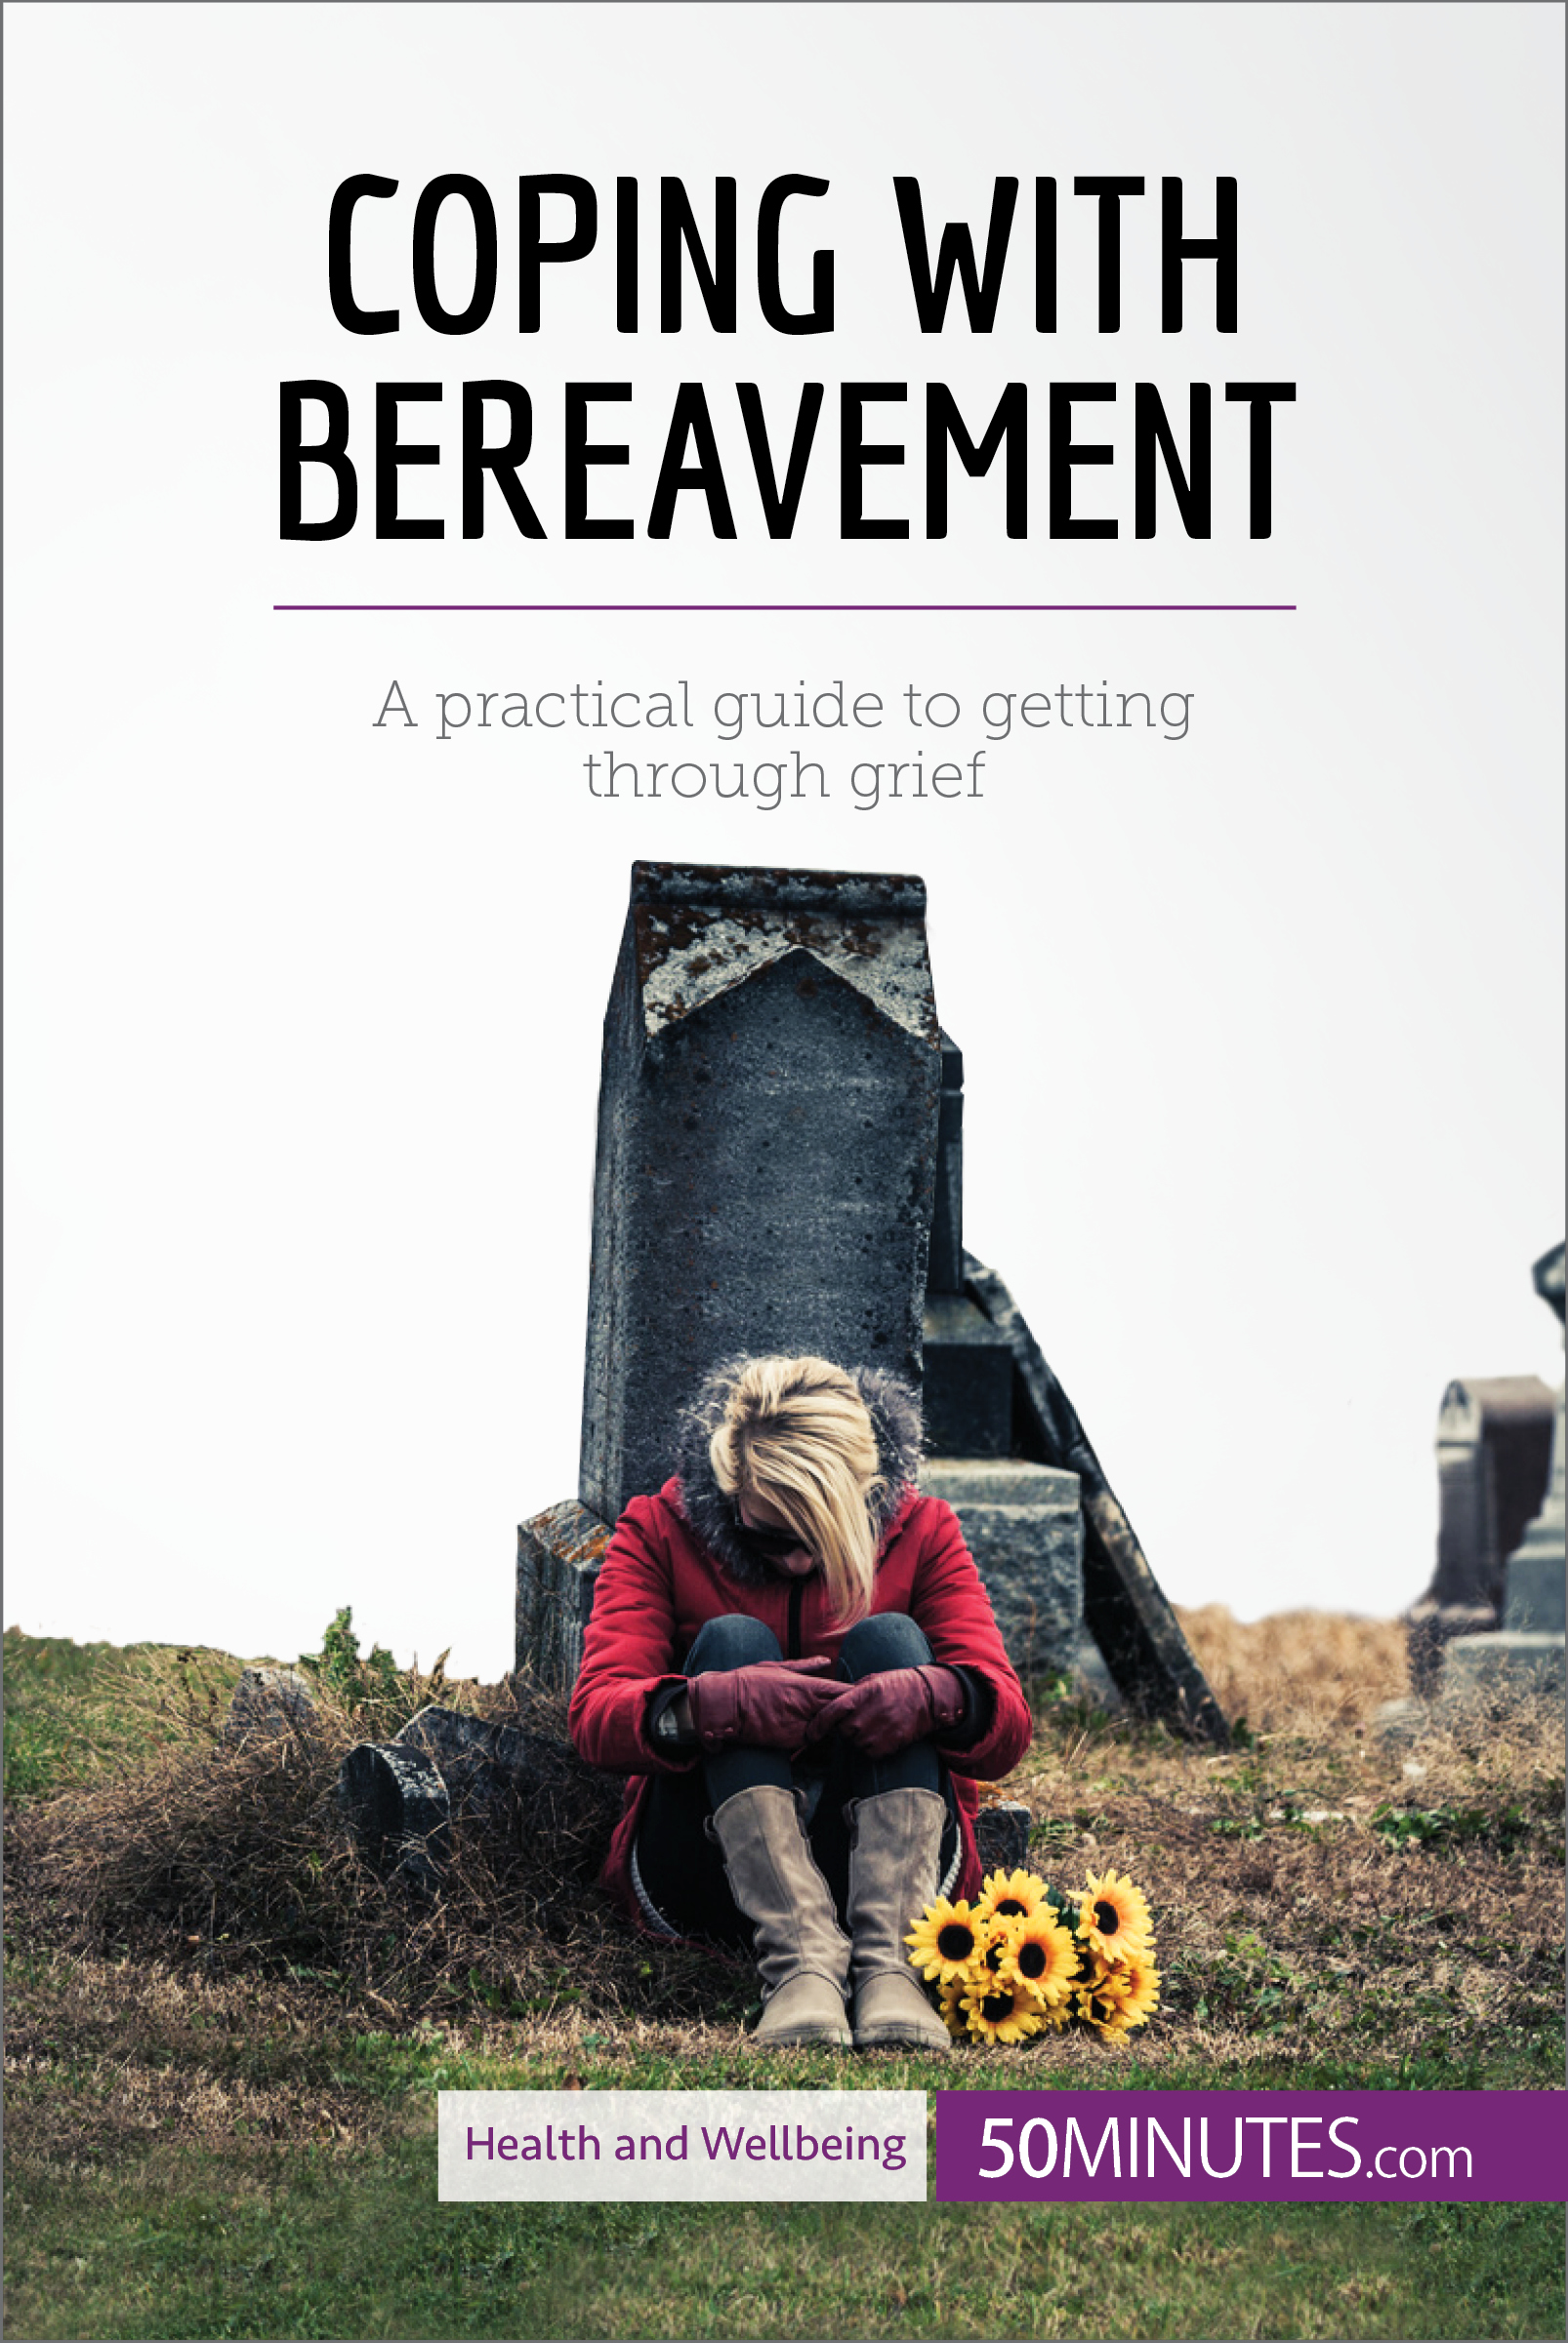 Coping with Bereavement